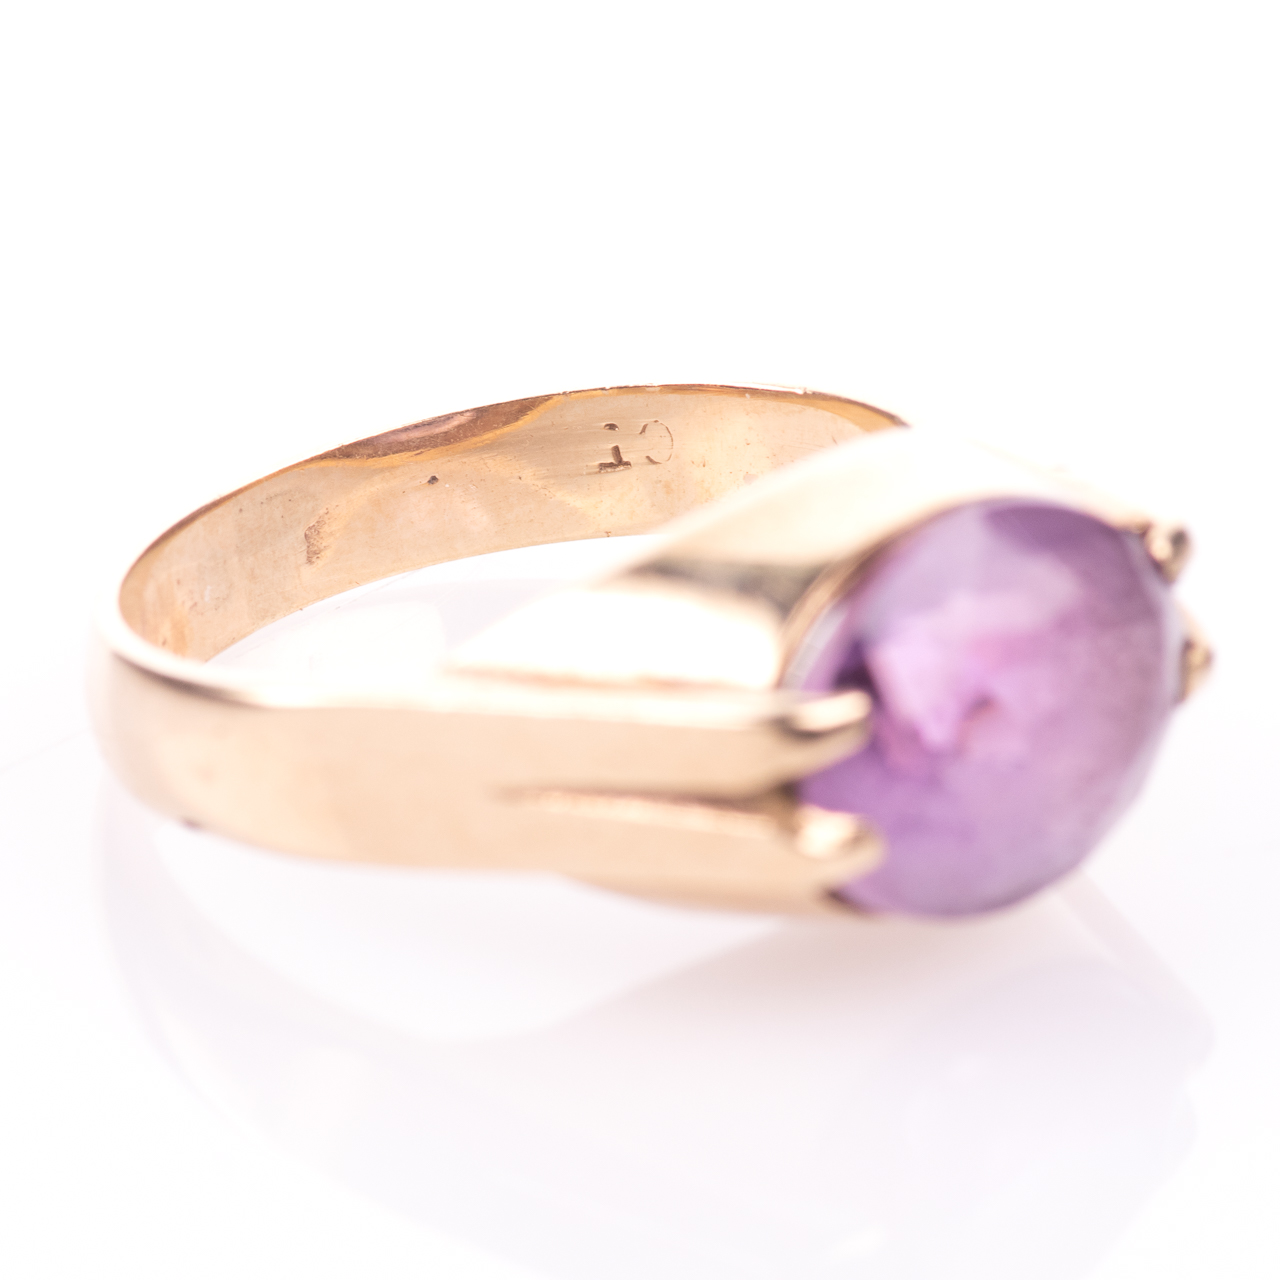 9ct Gold 3.20ct Amethyst Ring - Image 6 of 7